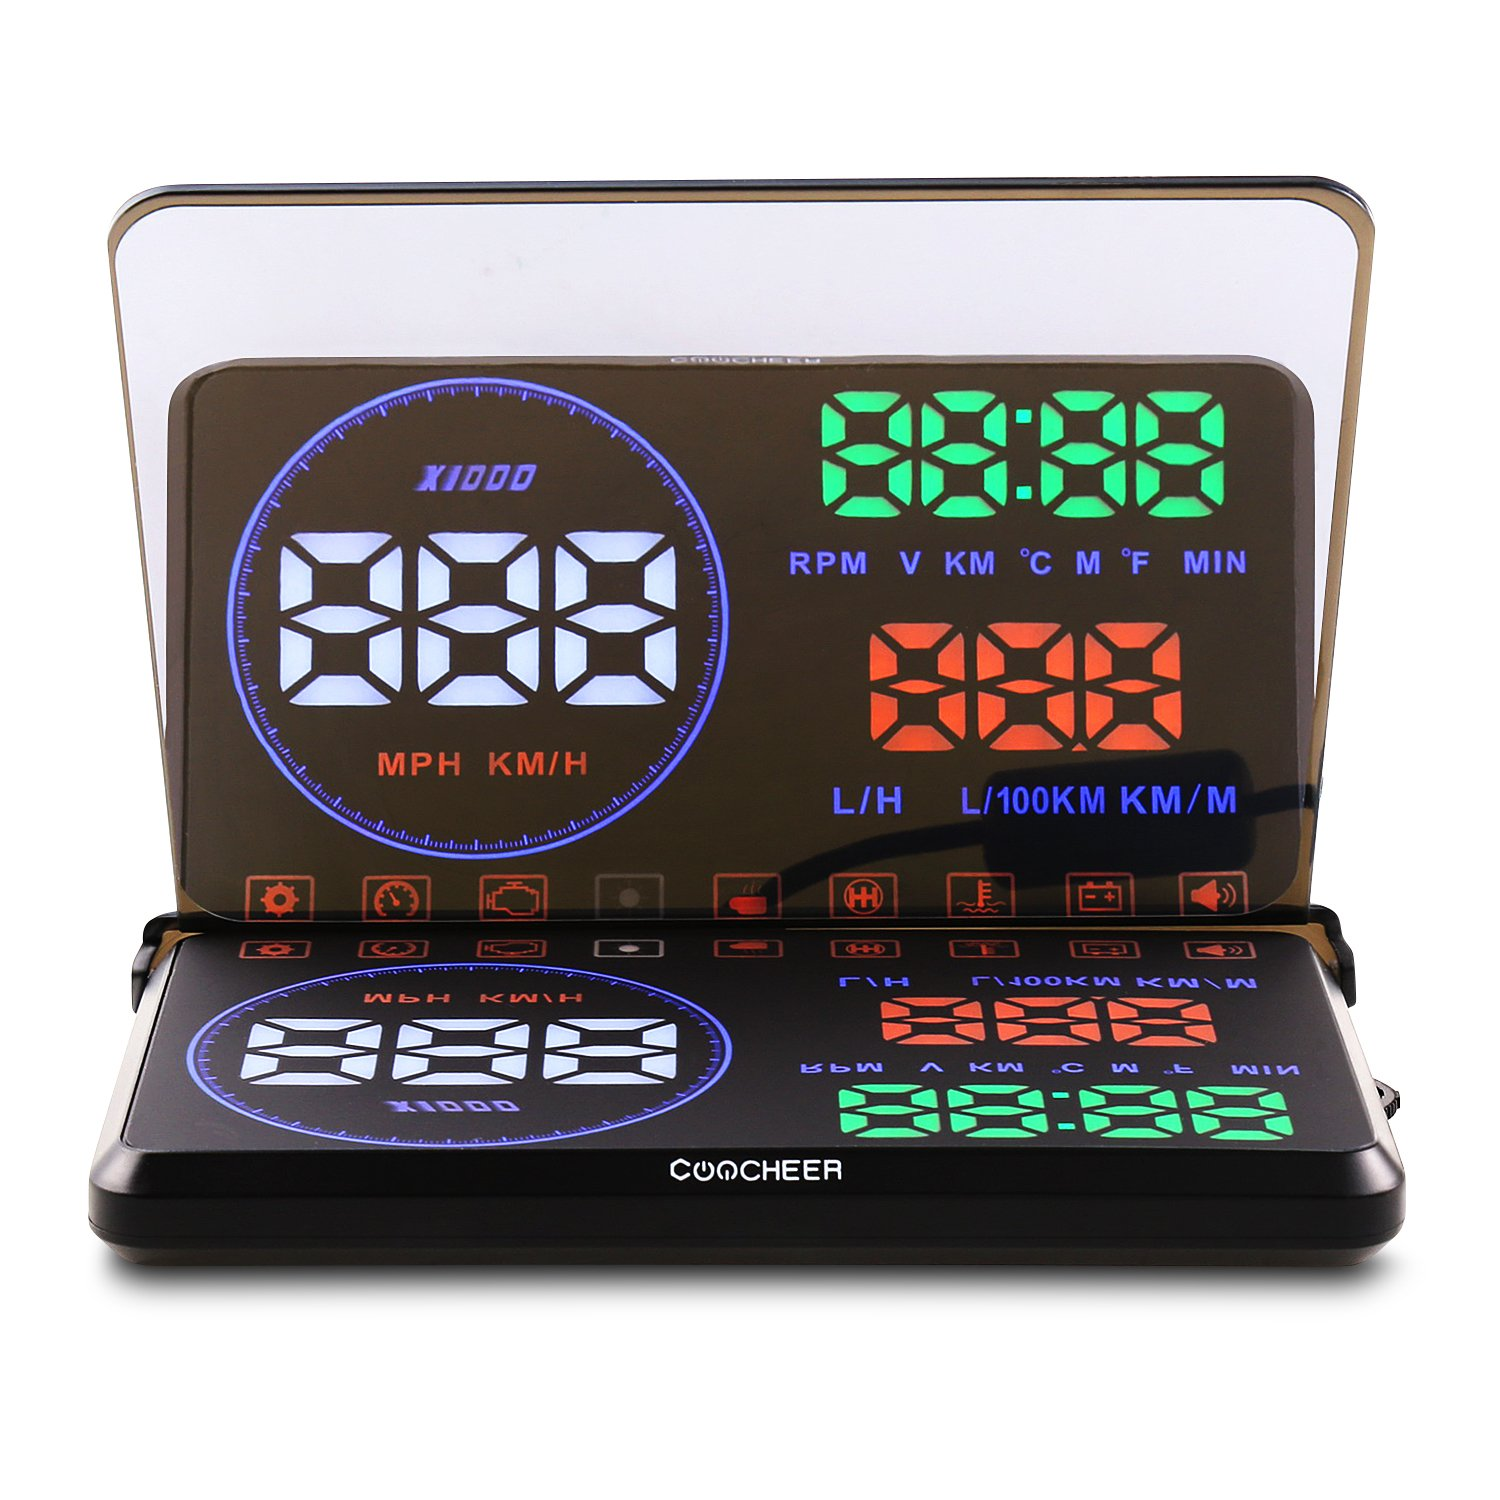 COOCHEER Head Up Display, Car HUD with OBD2,Interface Plug Display Speed, RPM, Temperature, Fuel Consumption, Driving Distance Measurement,Various Alarm